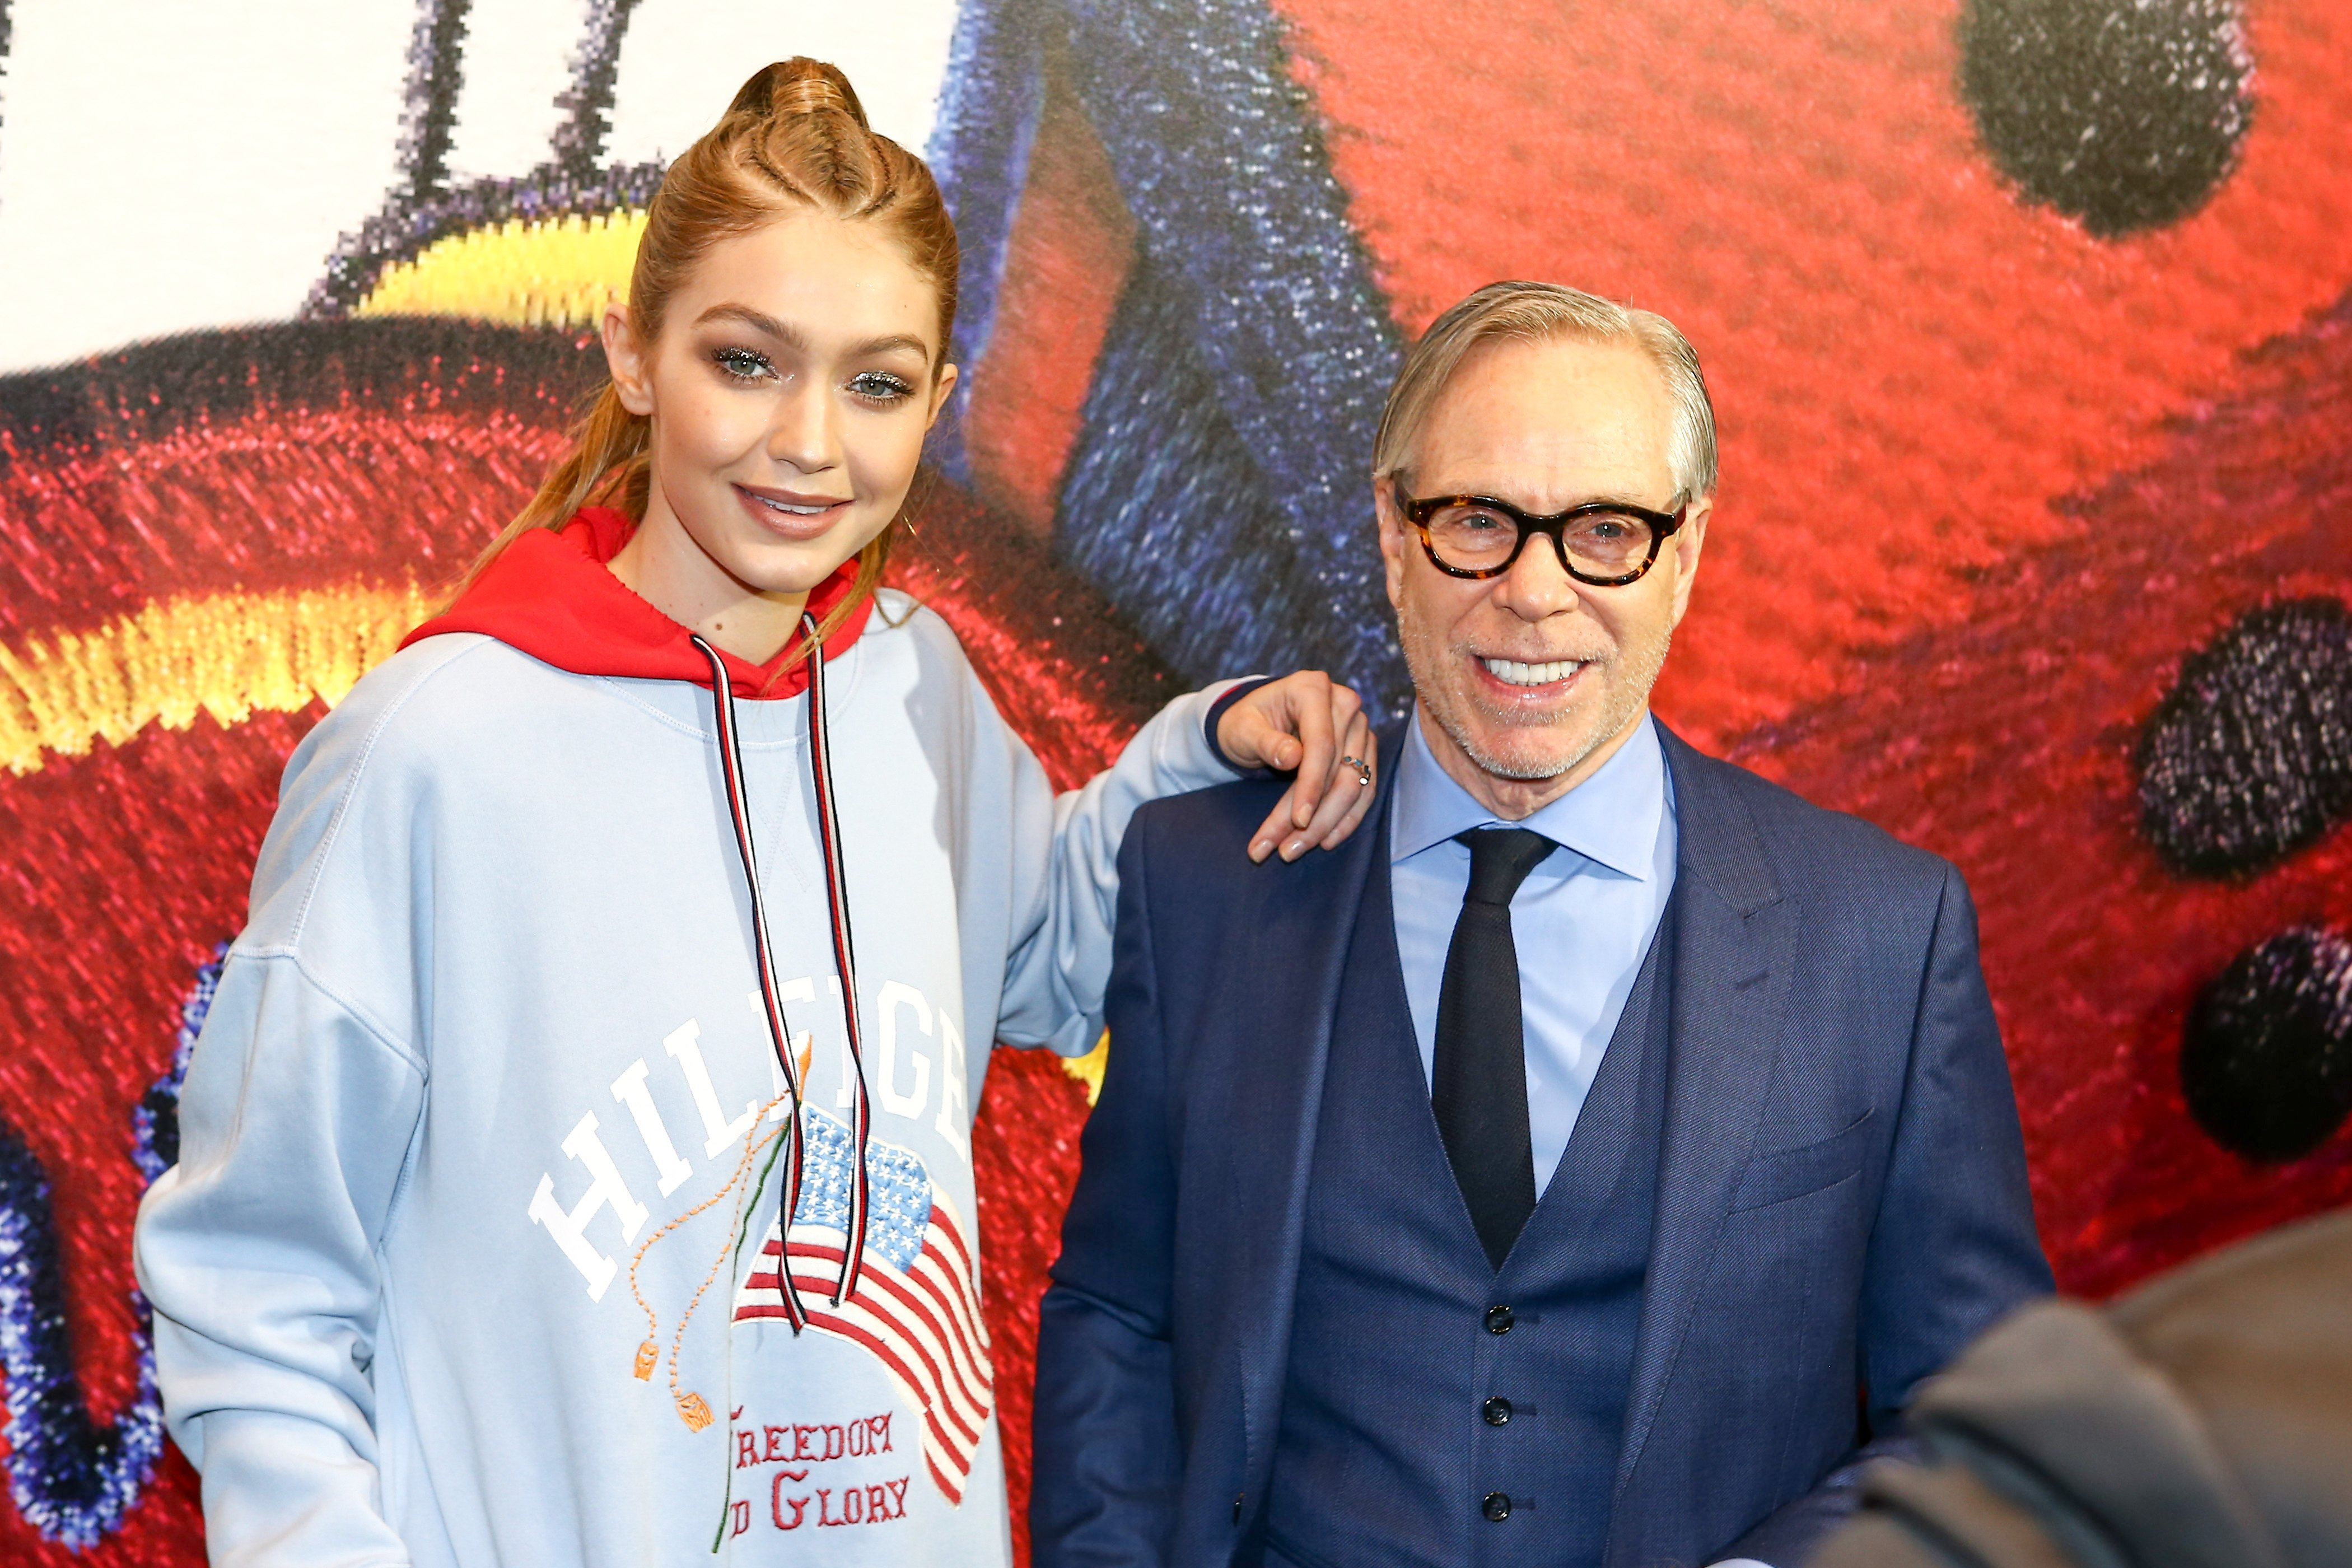 Model Gigi Hadid and designer Tommy Hilfiger attend the Capsule Collection 'Tommy X Gigi' Spring 2017 as part of the Paris Fashion Week Womenswear Fall/Winter 2017/2018 on February 28, 2017 in Paris, France, Image: 322783241, License: Rights-managed, Restrictions: Worldwide rights, Model Release: no, Credit line: Profimedia, Crystal pictures